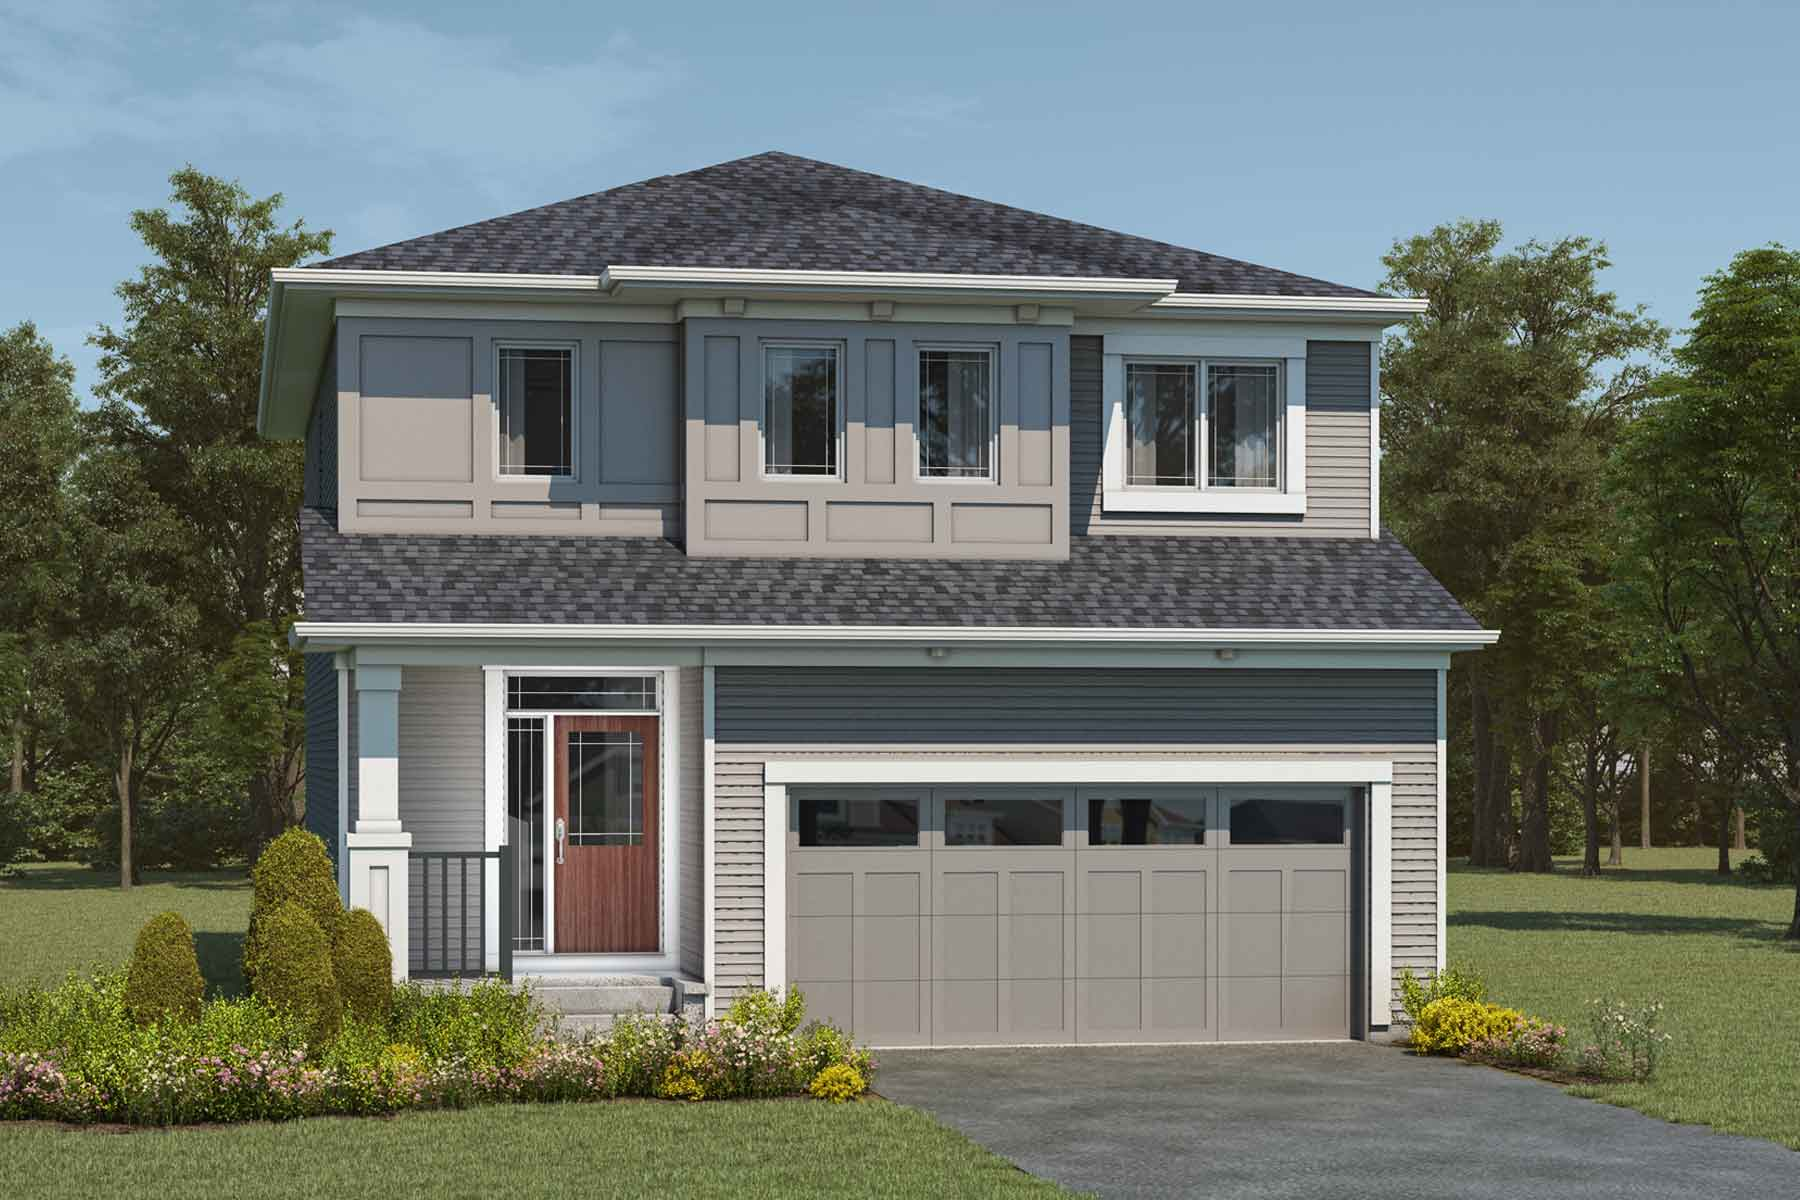 Fullerton Plan Elevation Front at Cityscape in Calgary Alberta by Mattamy Homes